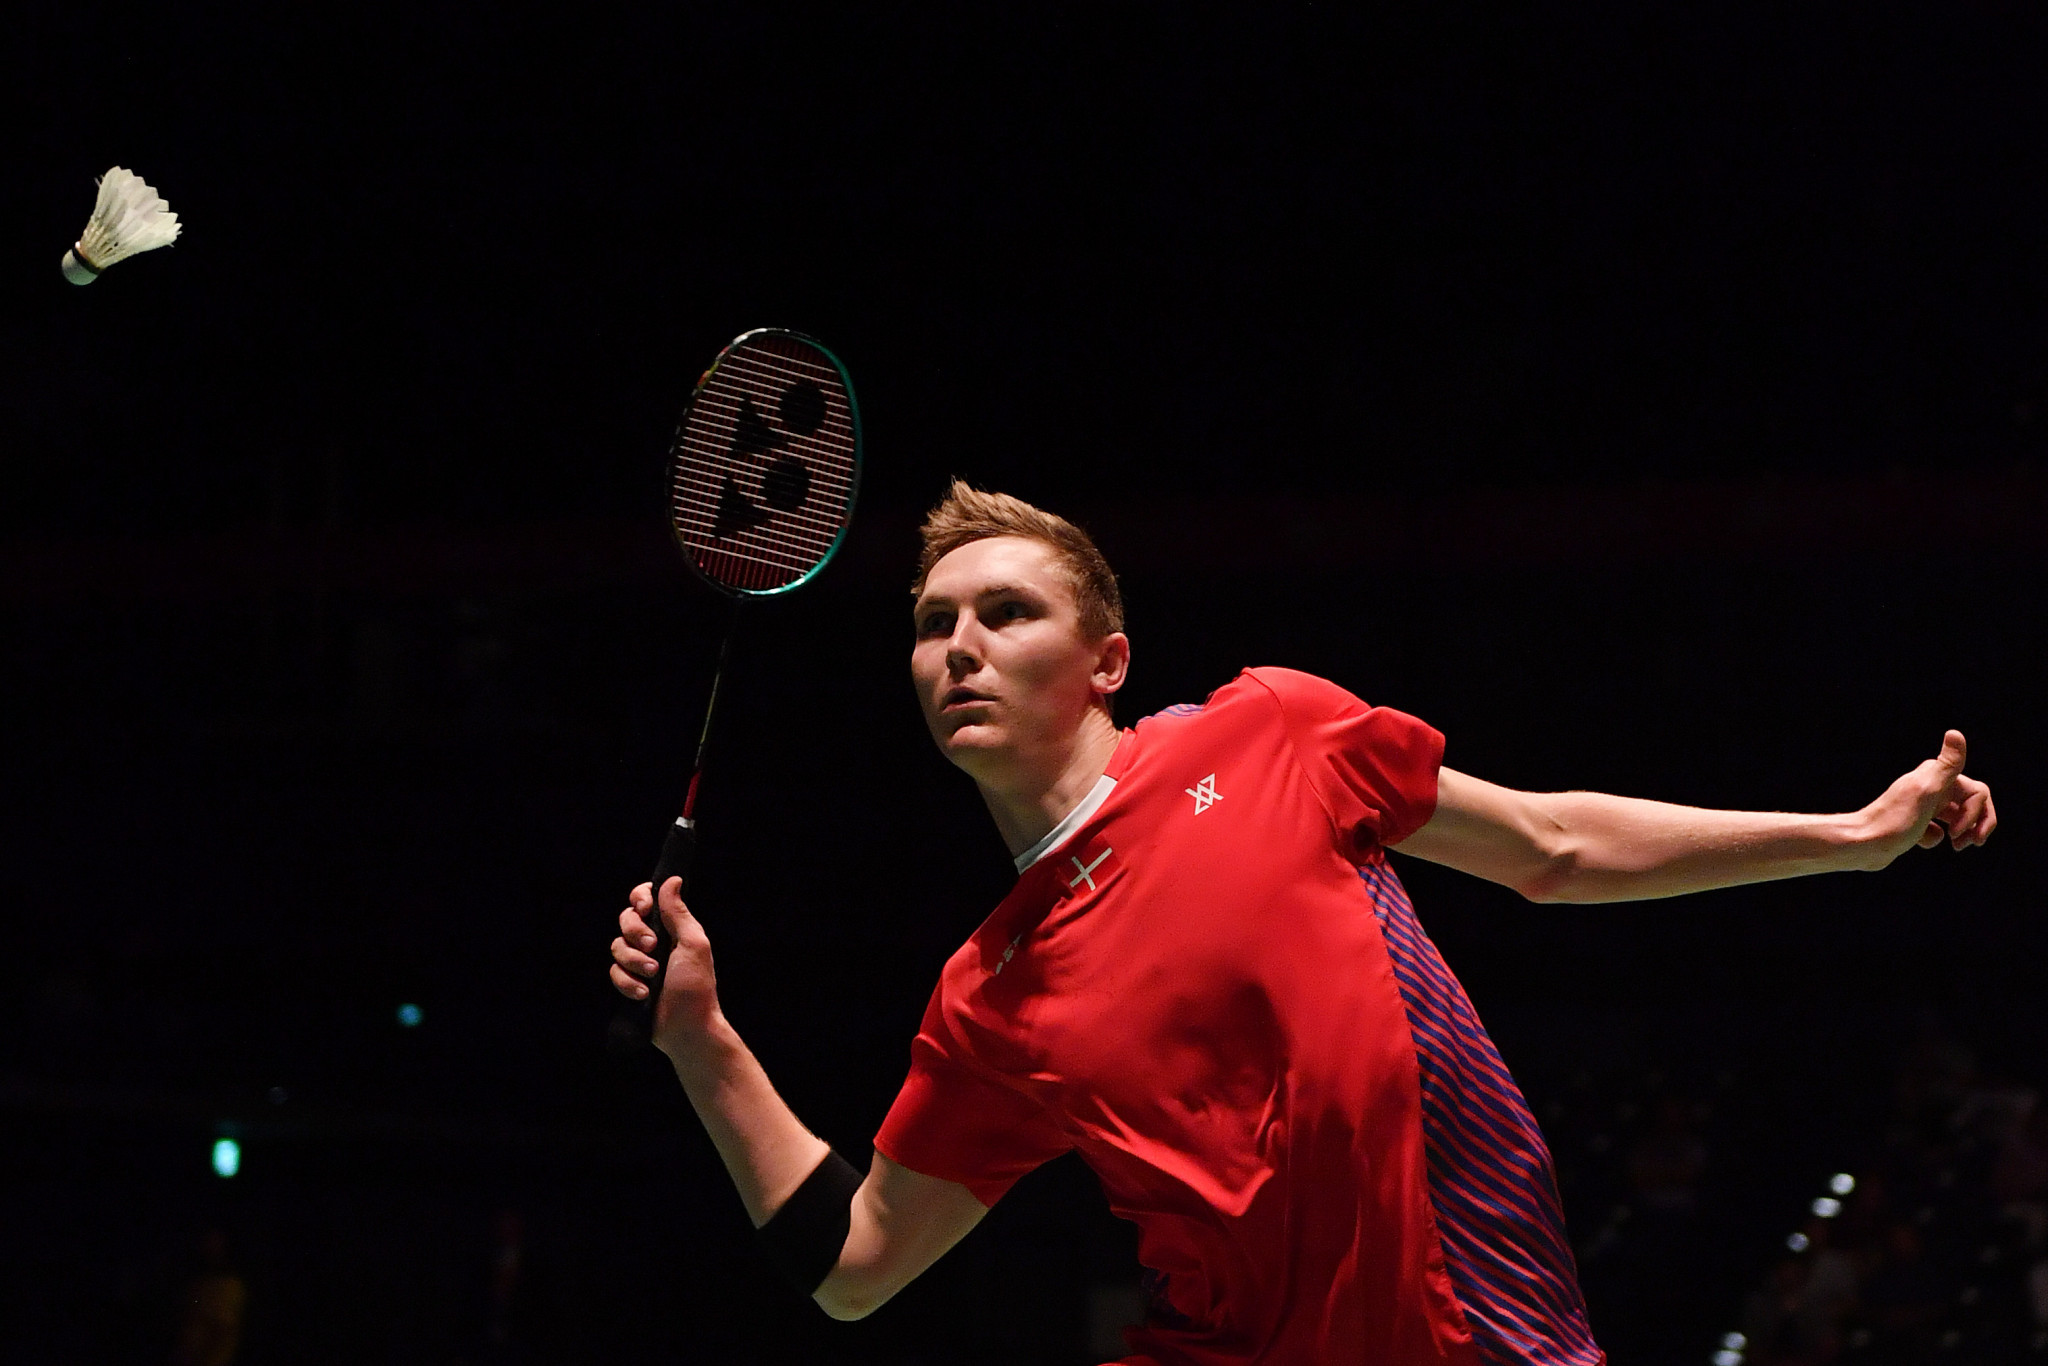 Top seed Axelsen suffers shock defeat to fellow home hope at BWF Denmark Open